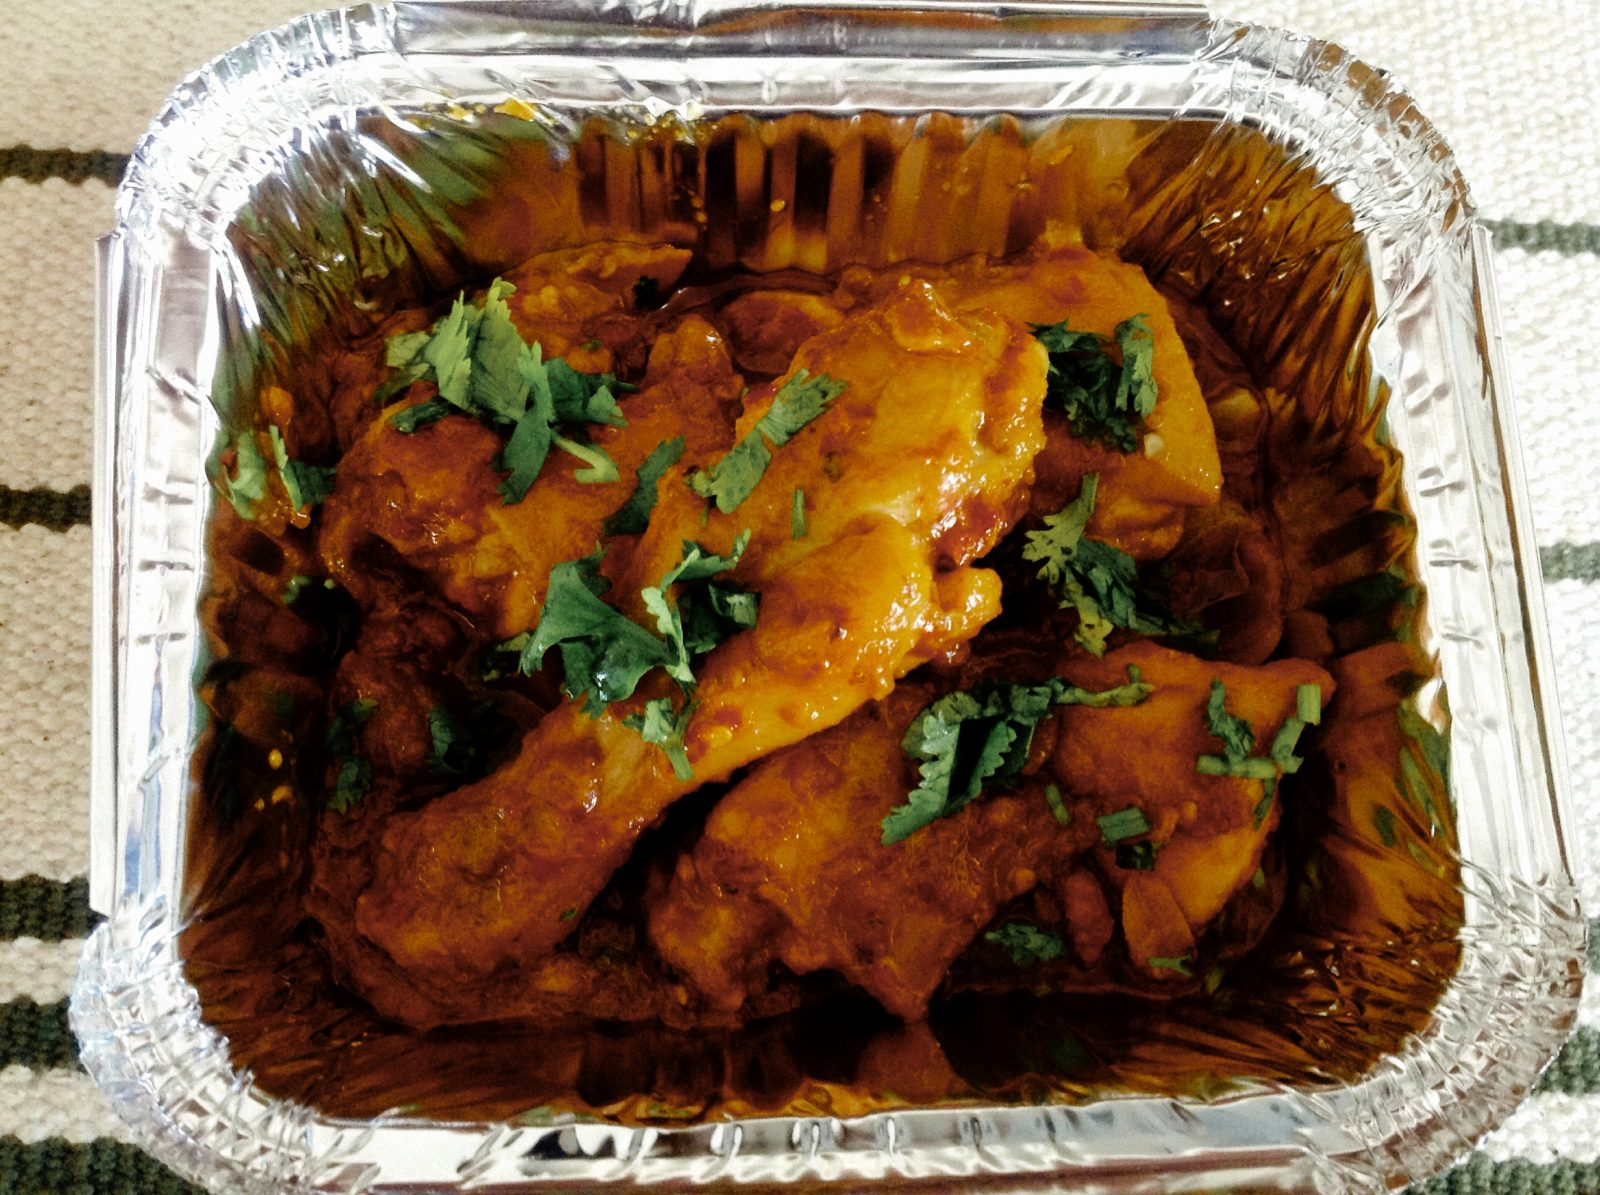 Red Chicken (Indian style) from Shelley's Kitchen